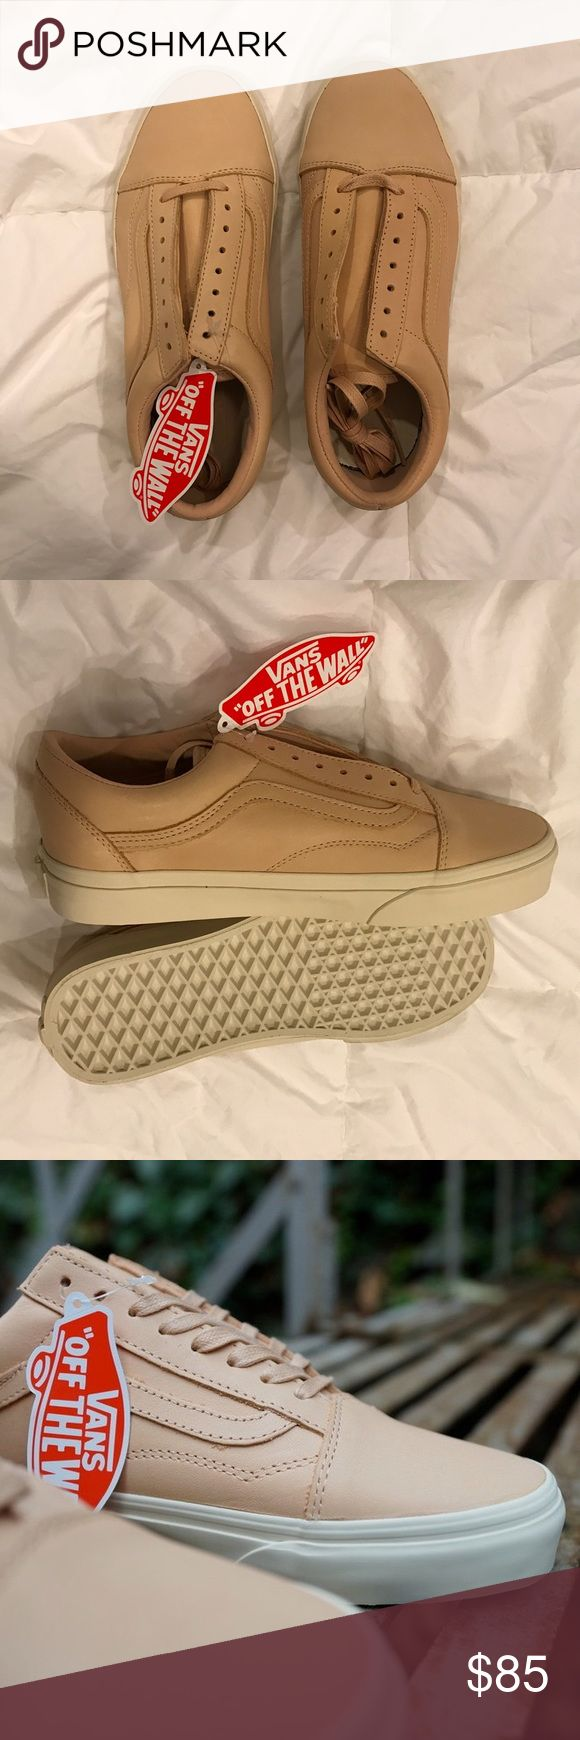 FLASH SALE! Vans Old Skool Tan Leather Brand new and never even tried on. Beautiful tan leather Old Skool Vans. Women's size 8 or Men's 6.5. Vans Shoes Sneakers